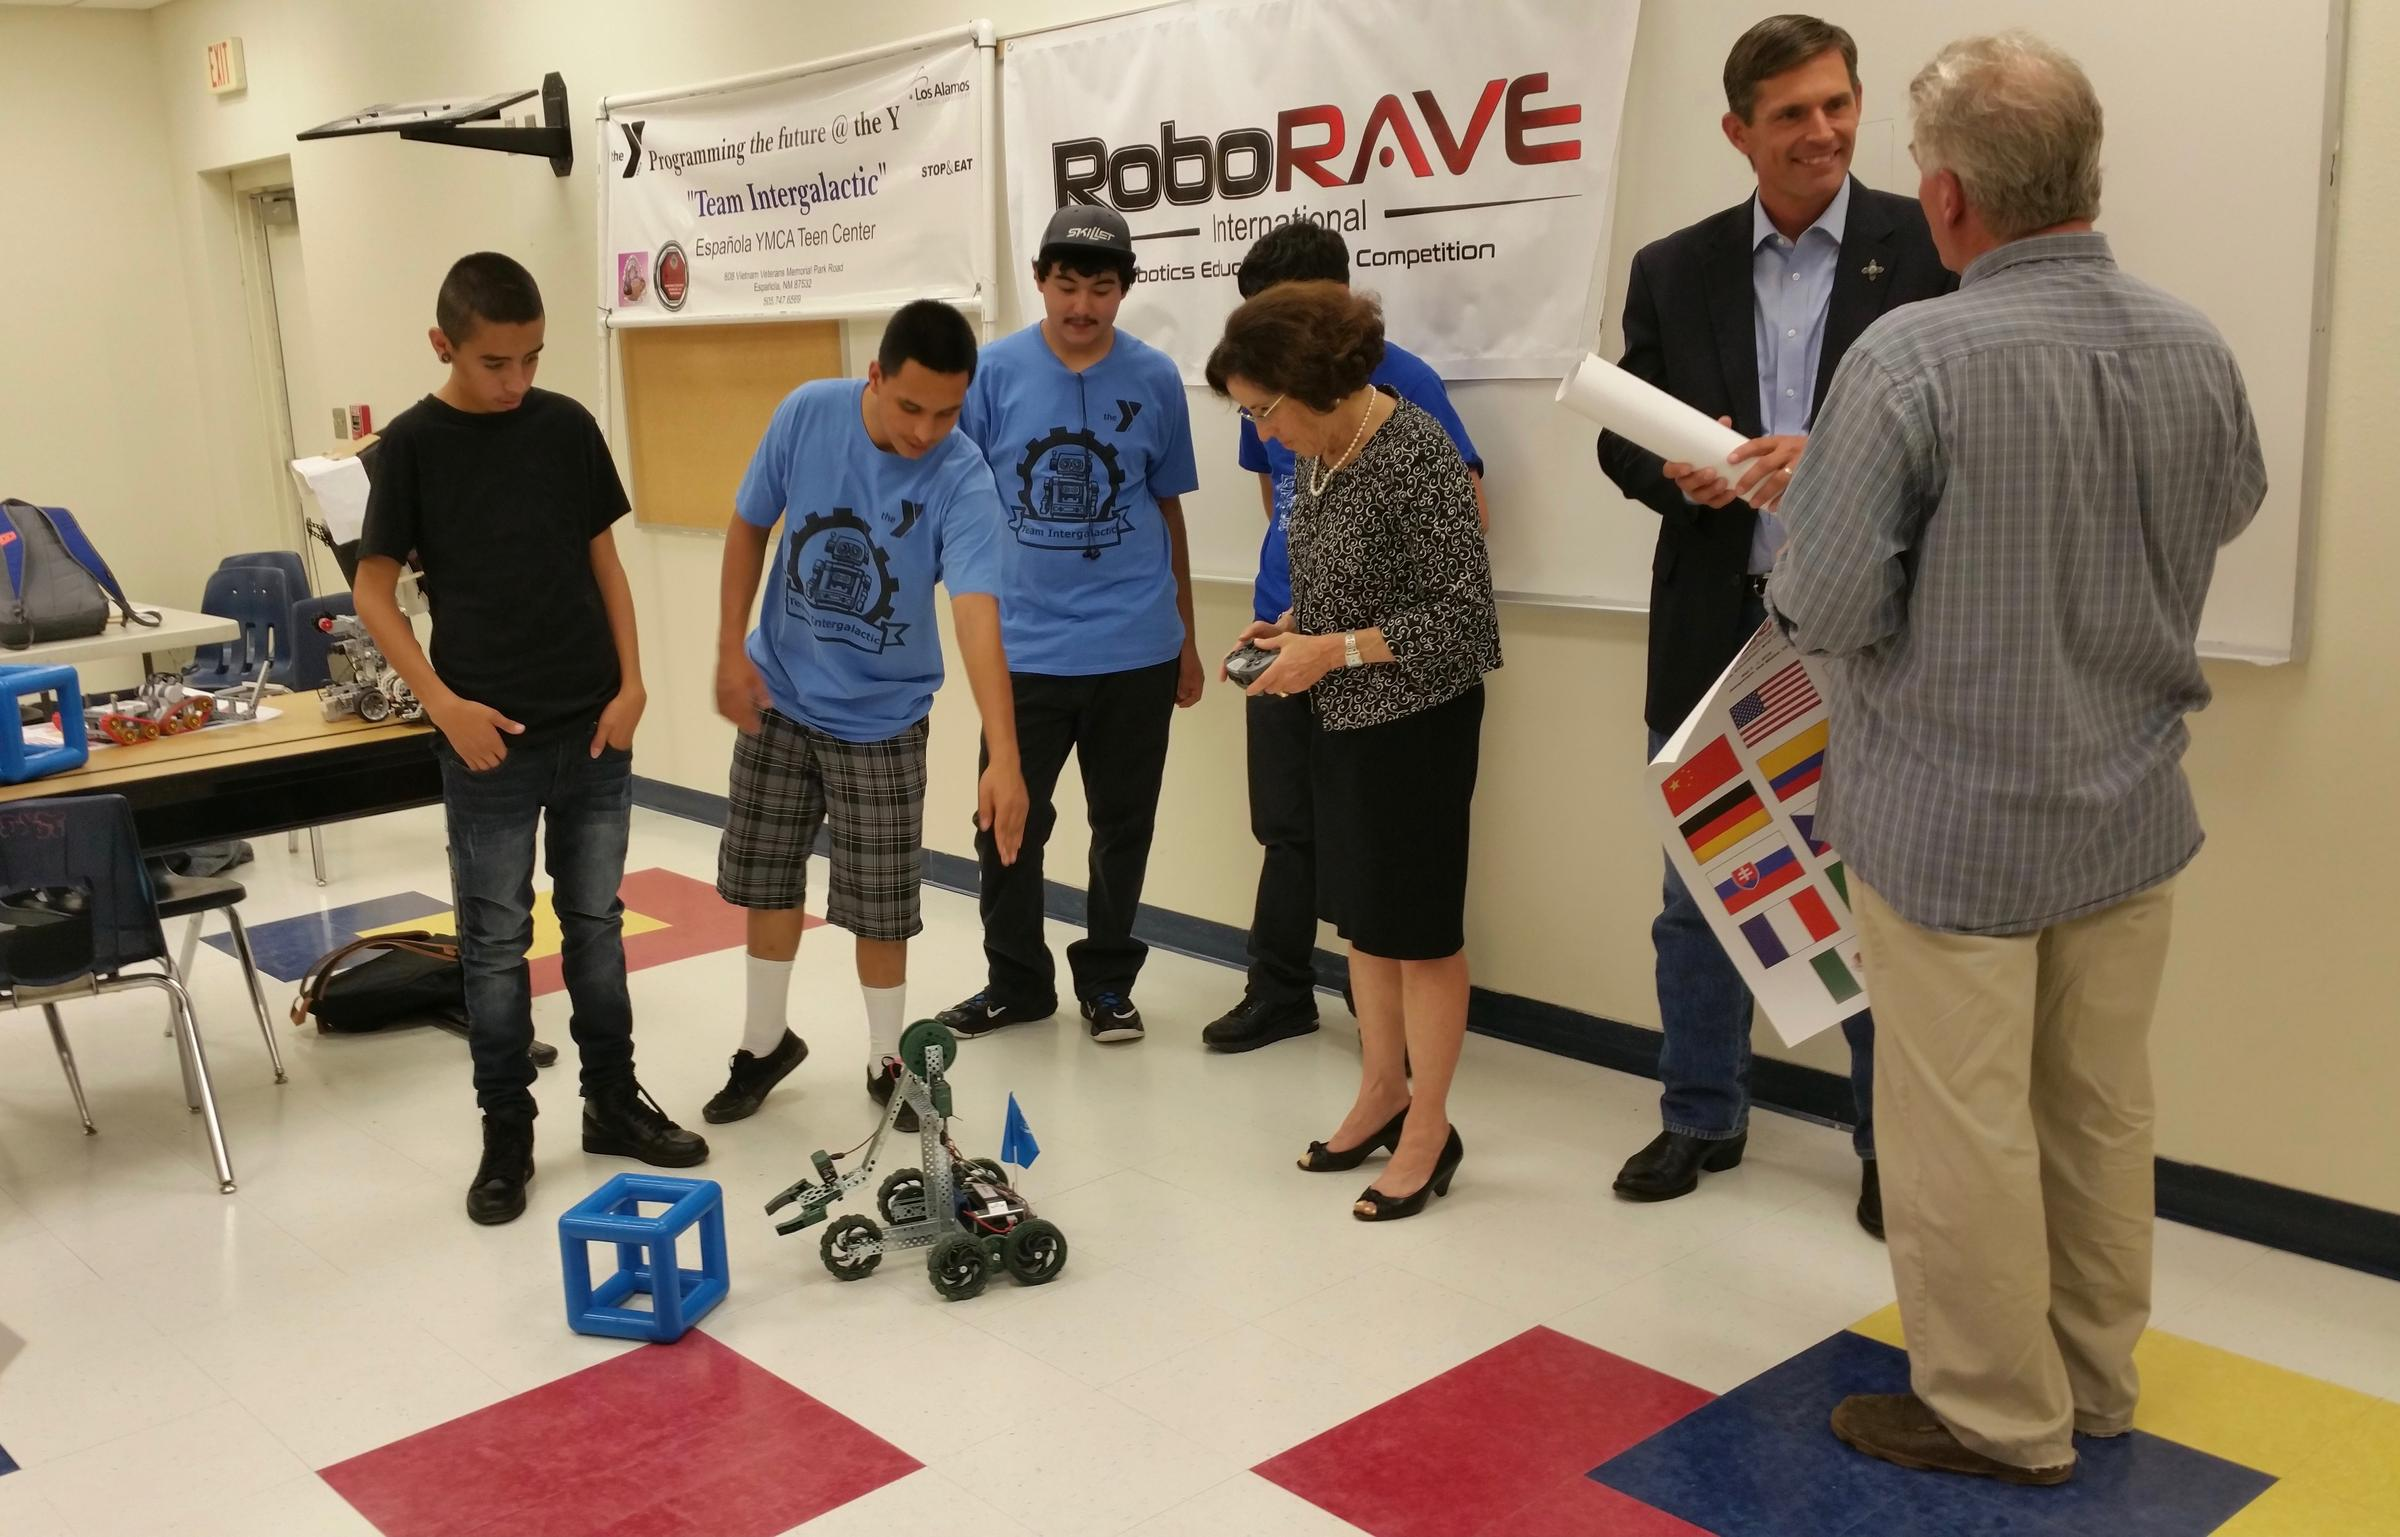 National Science Foundation director France Córdova pilots a robot built by students at the YMCA Teen Center's robotics club Ed Williams / KUNM